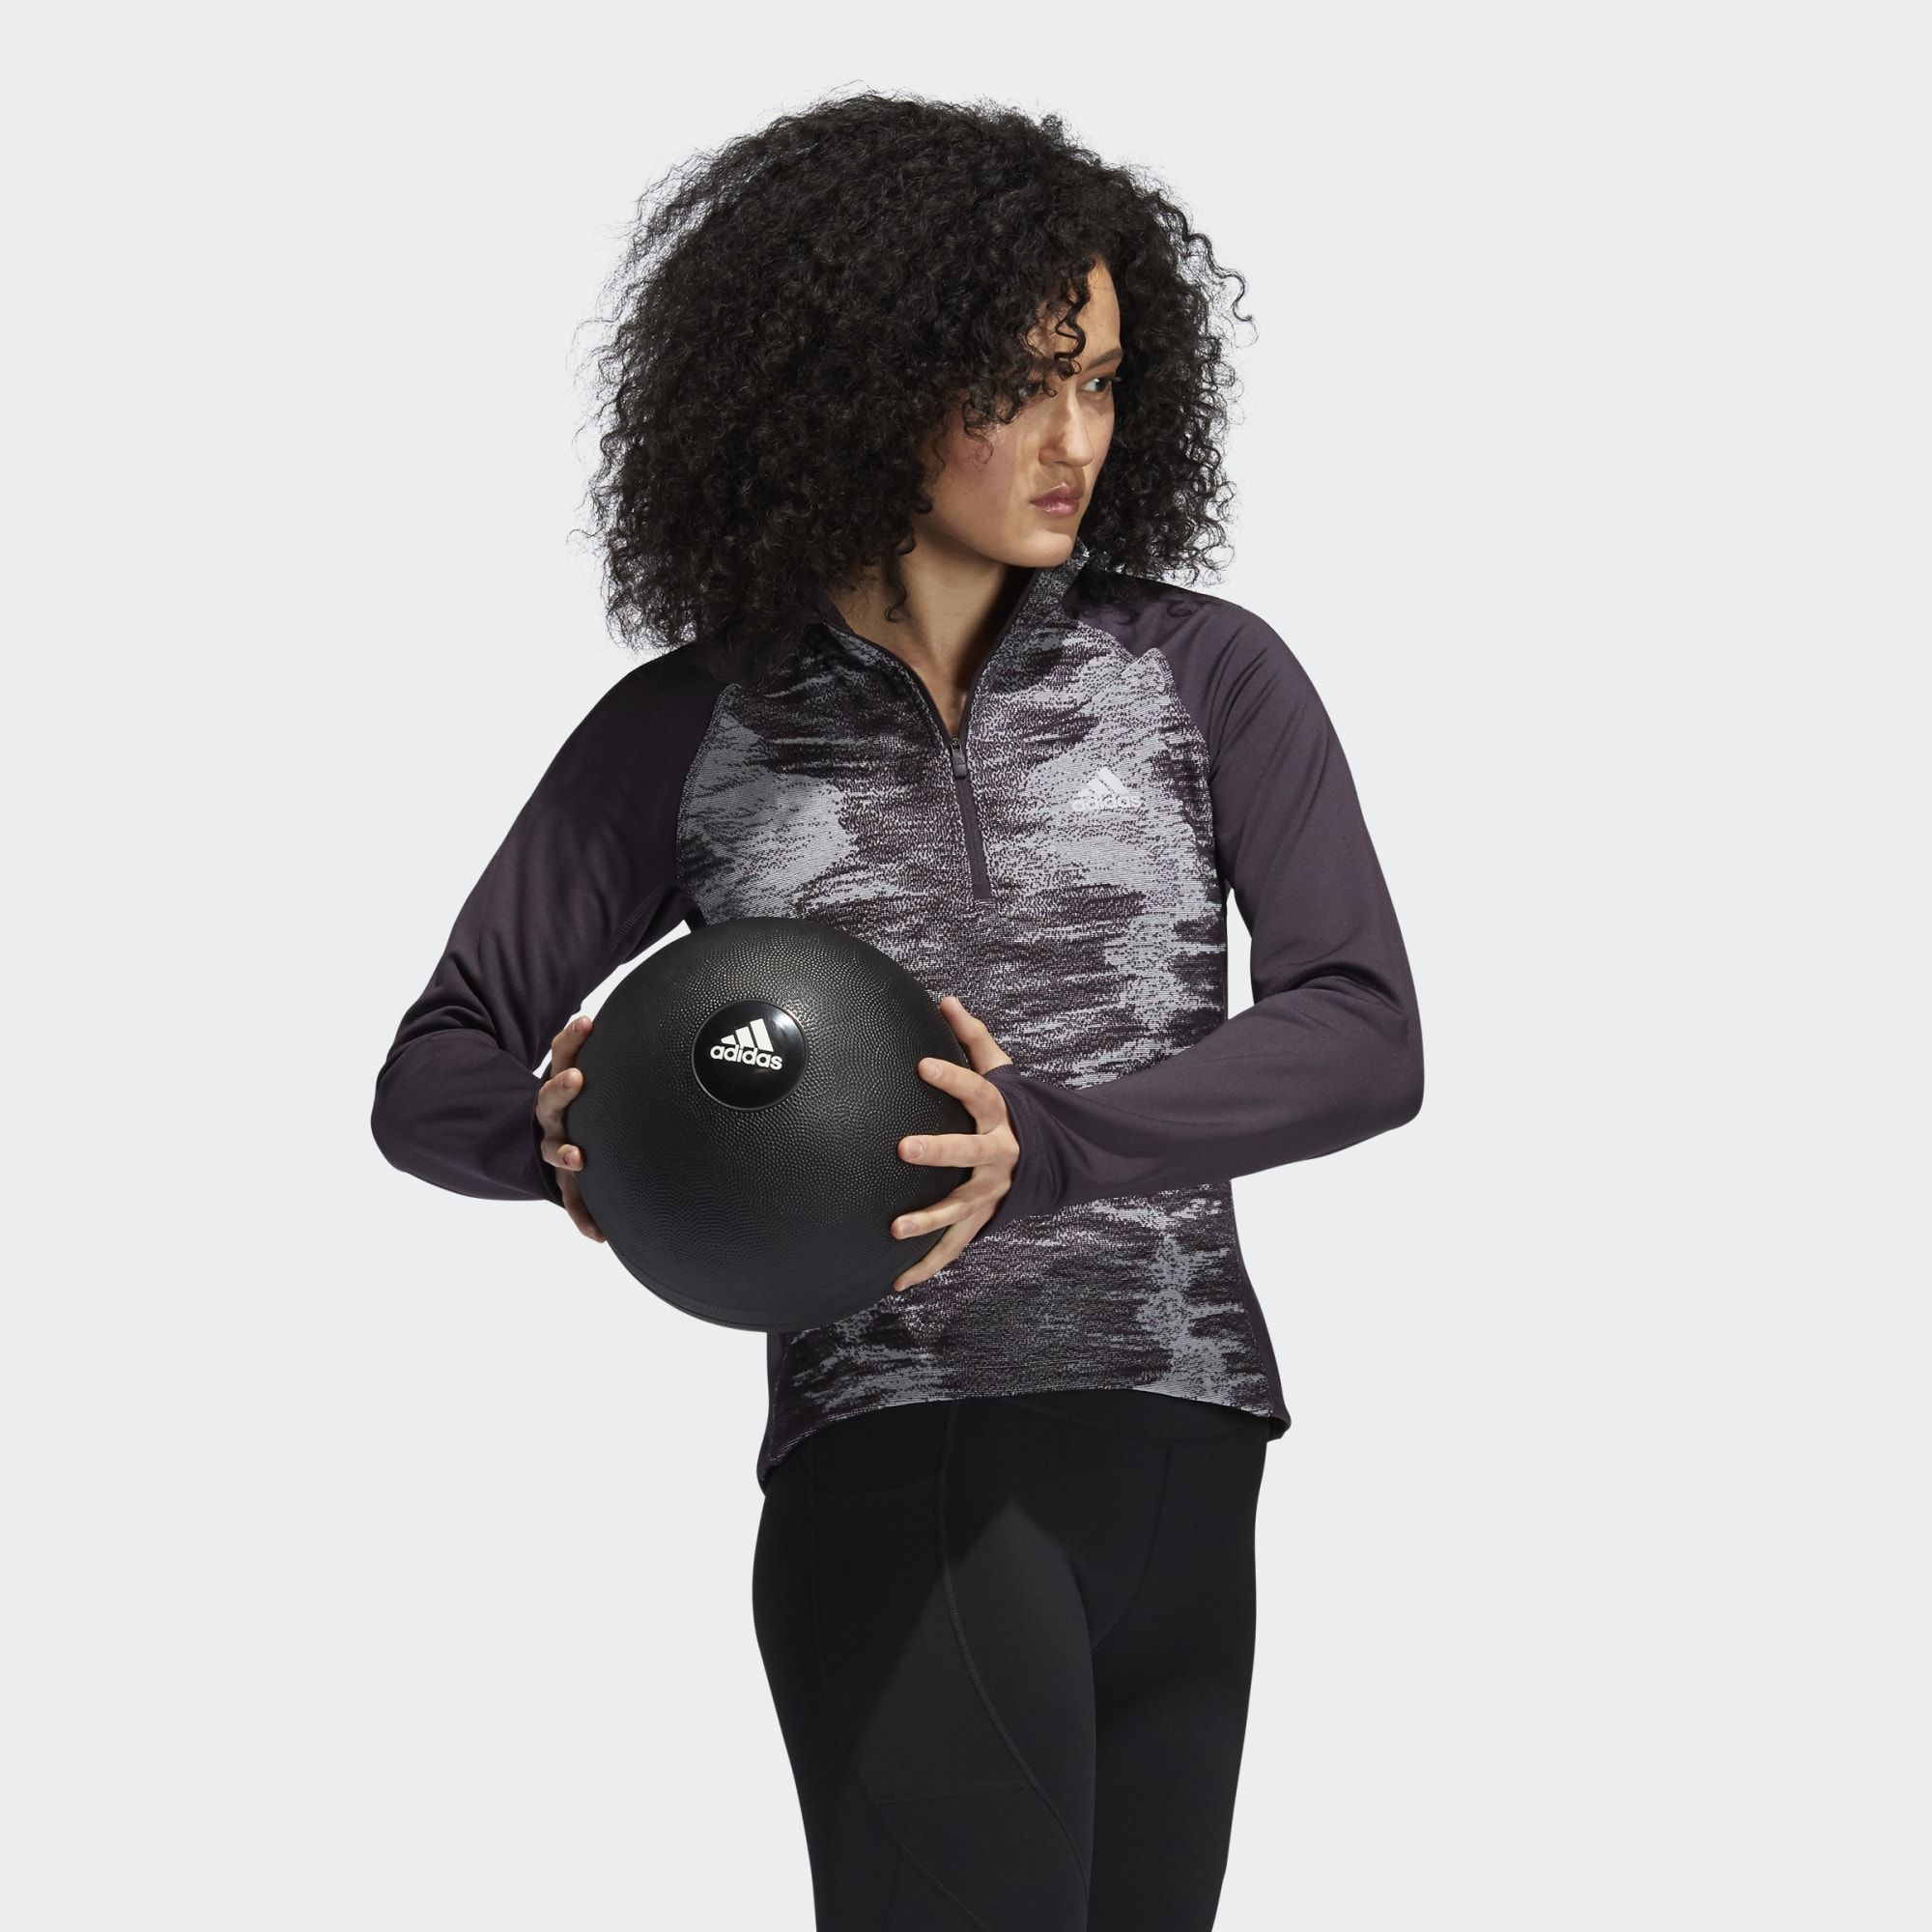 Adidas Women's Aeroready Training Top